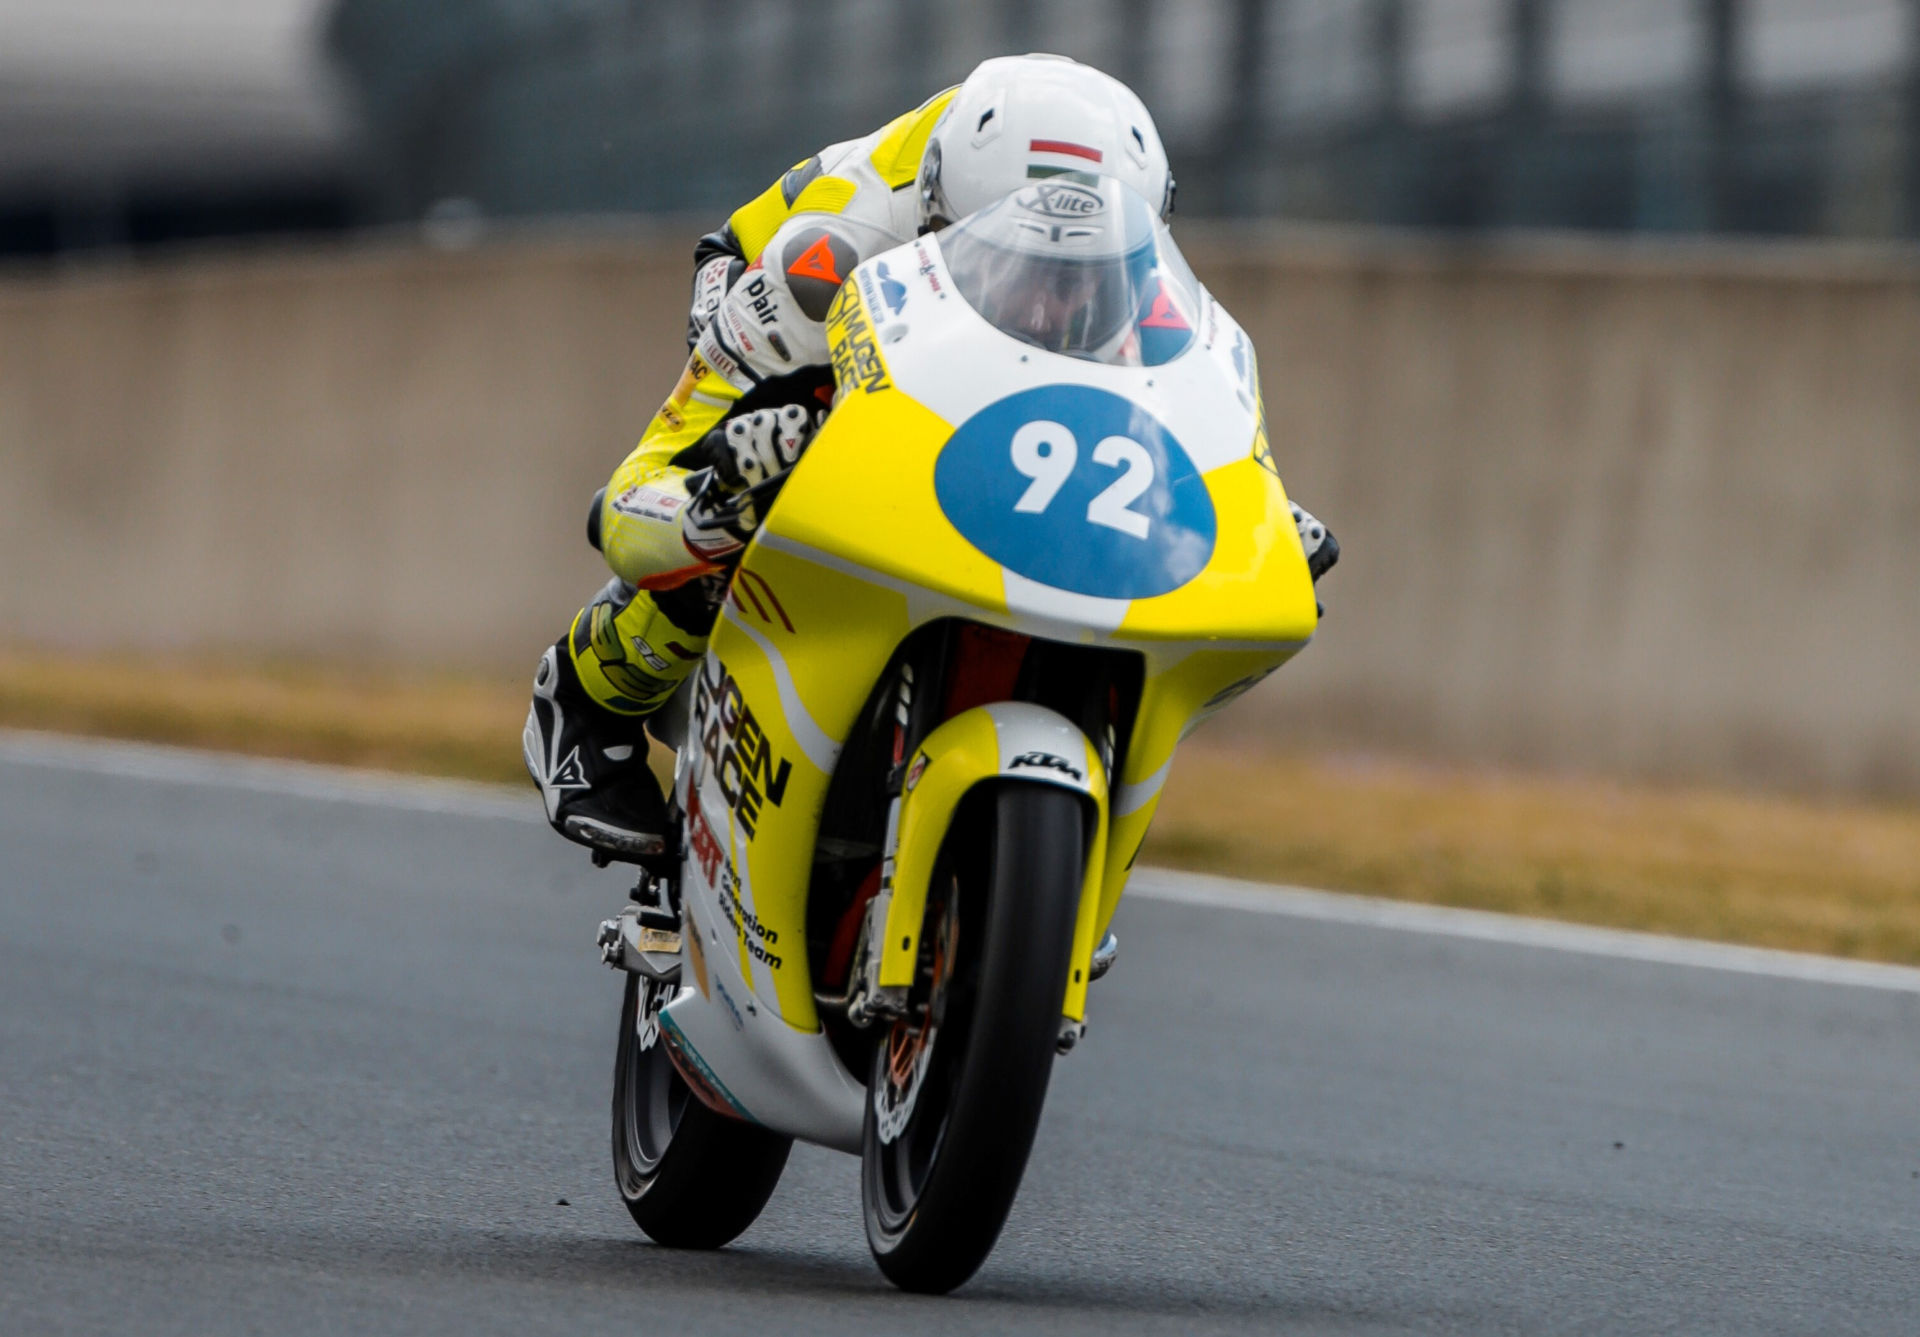 Rossi Moor (92) in action at Le Mans. Photo courtesy Fairum NGRT.